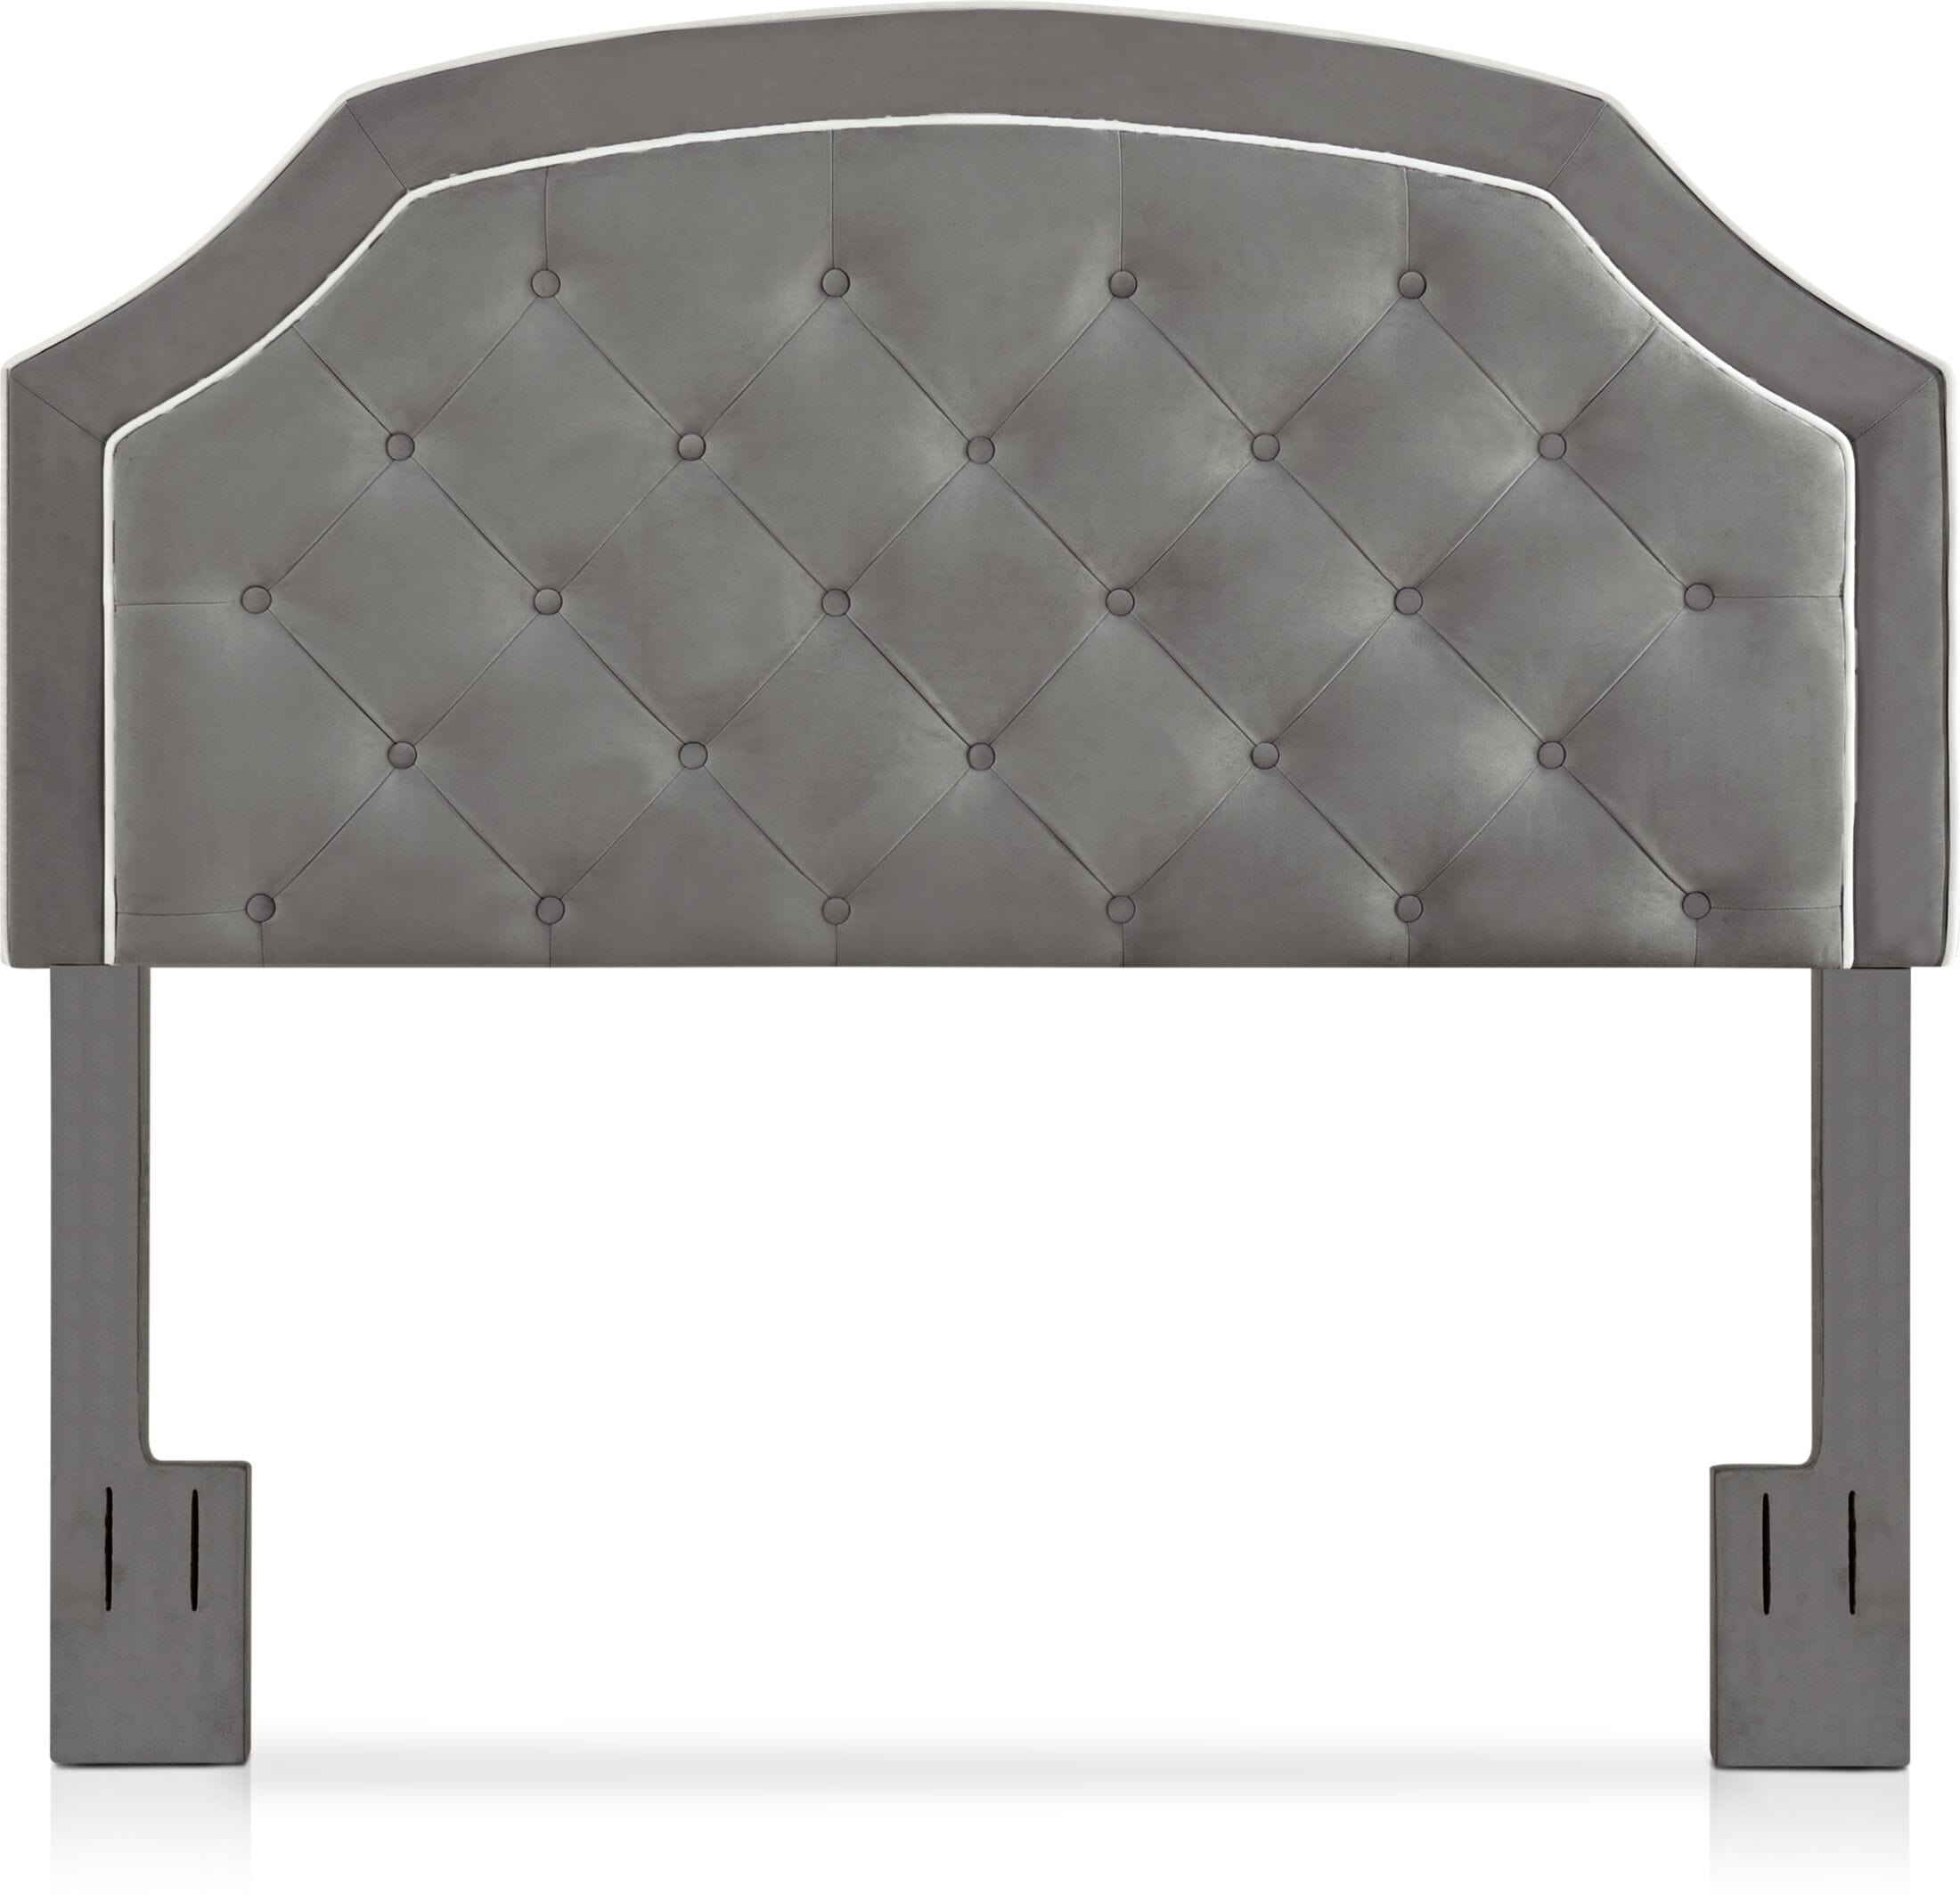 Bedroom Furniture - Aurora Upholstered Headboard